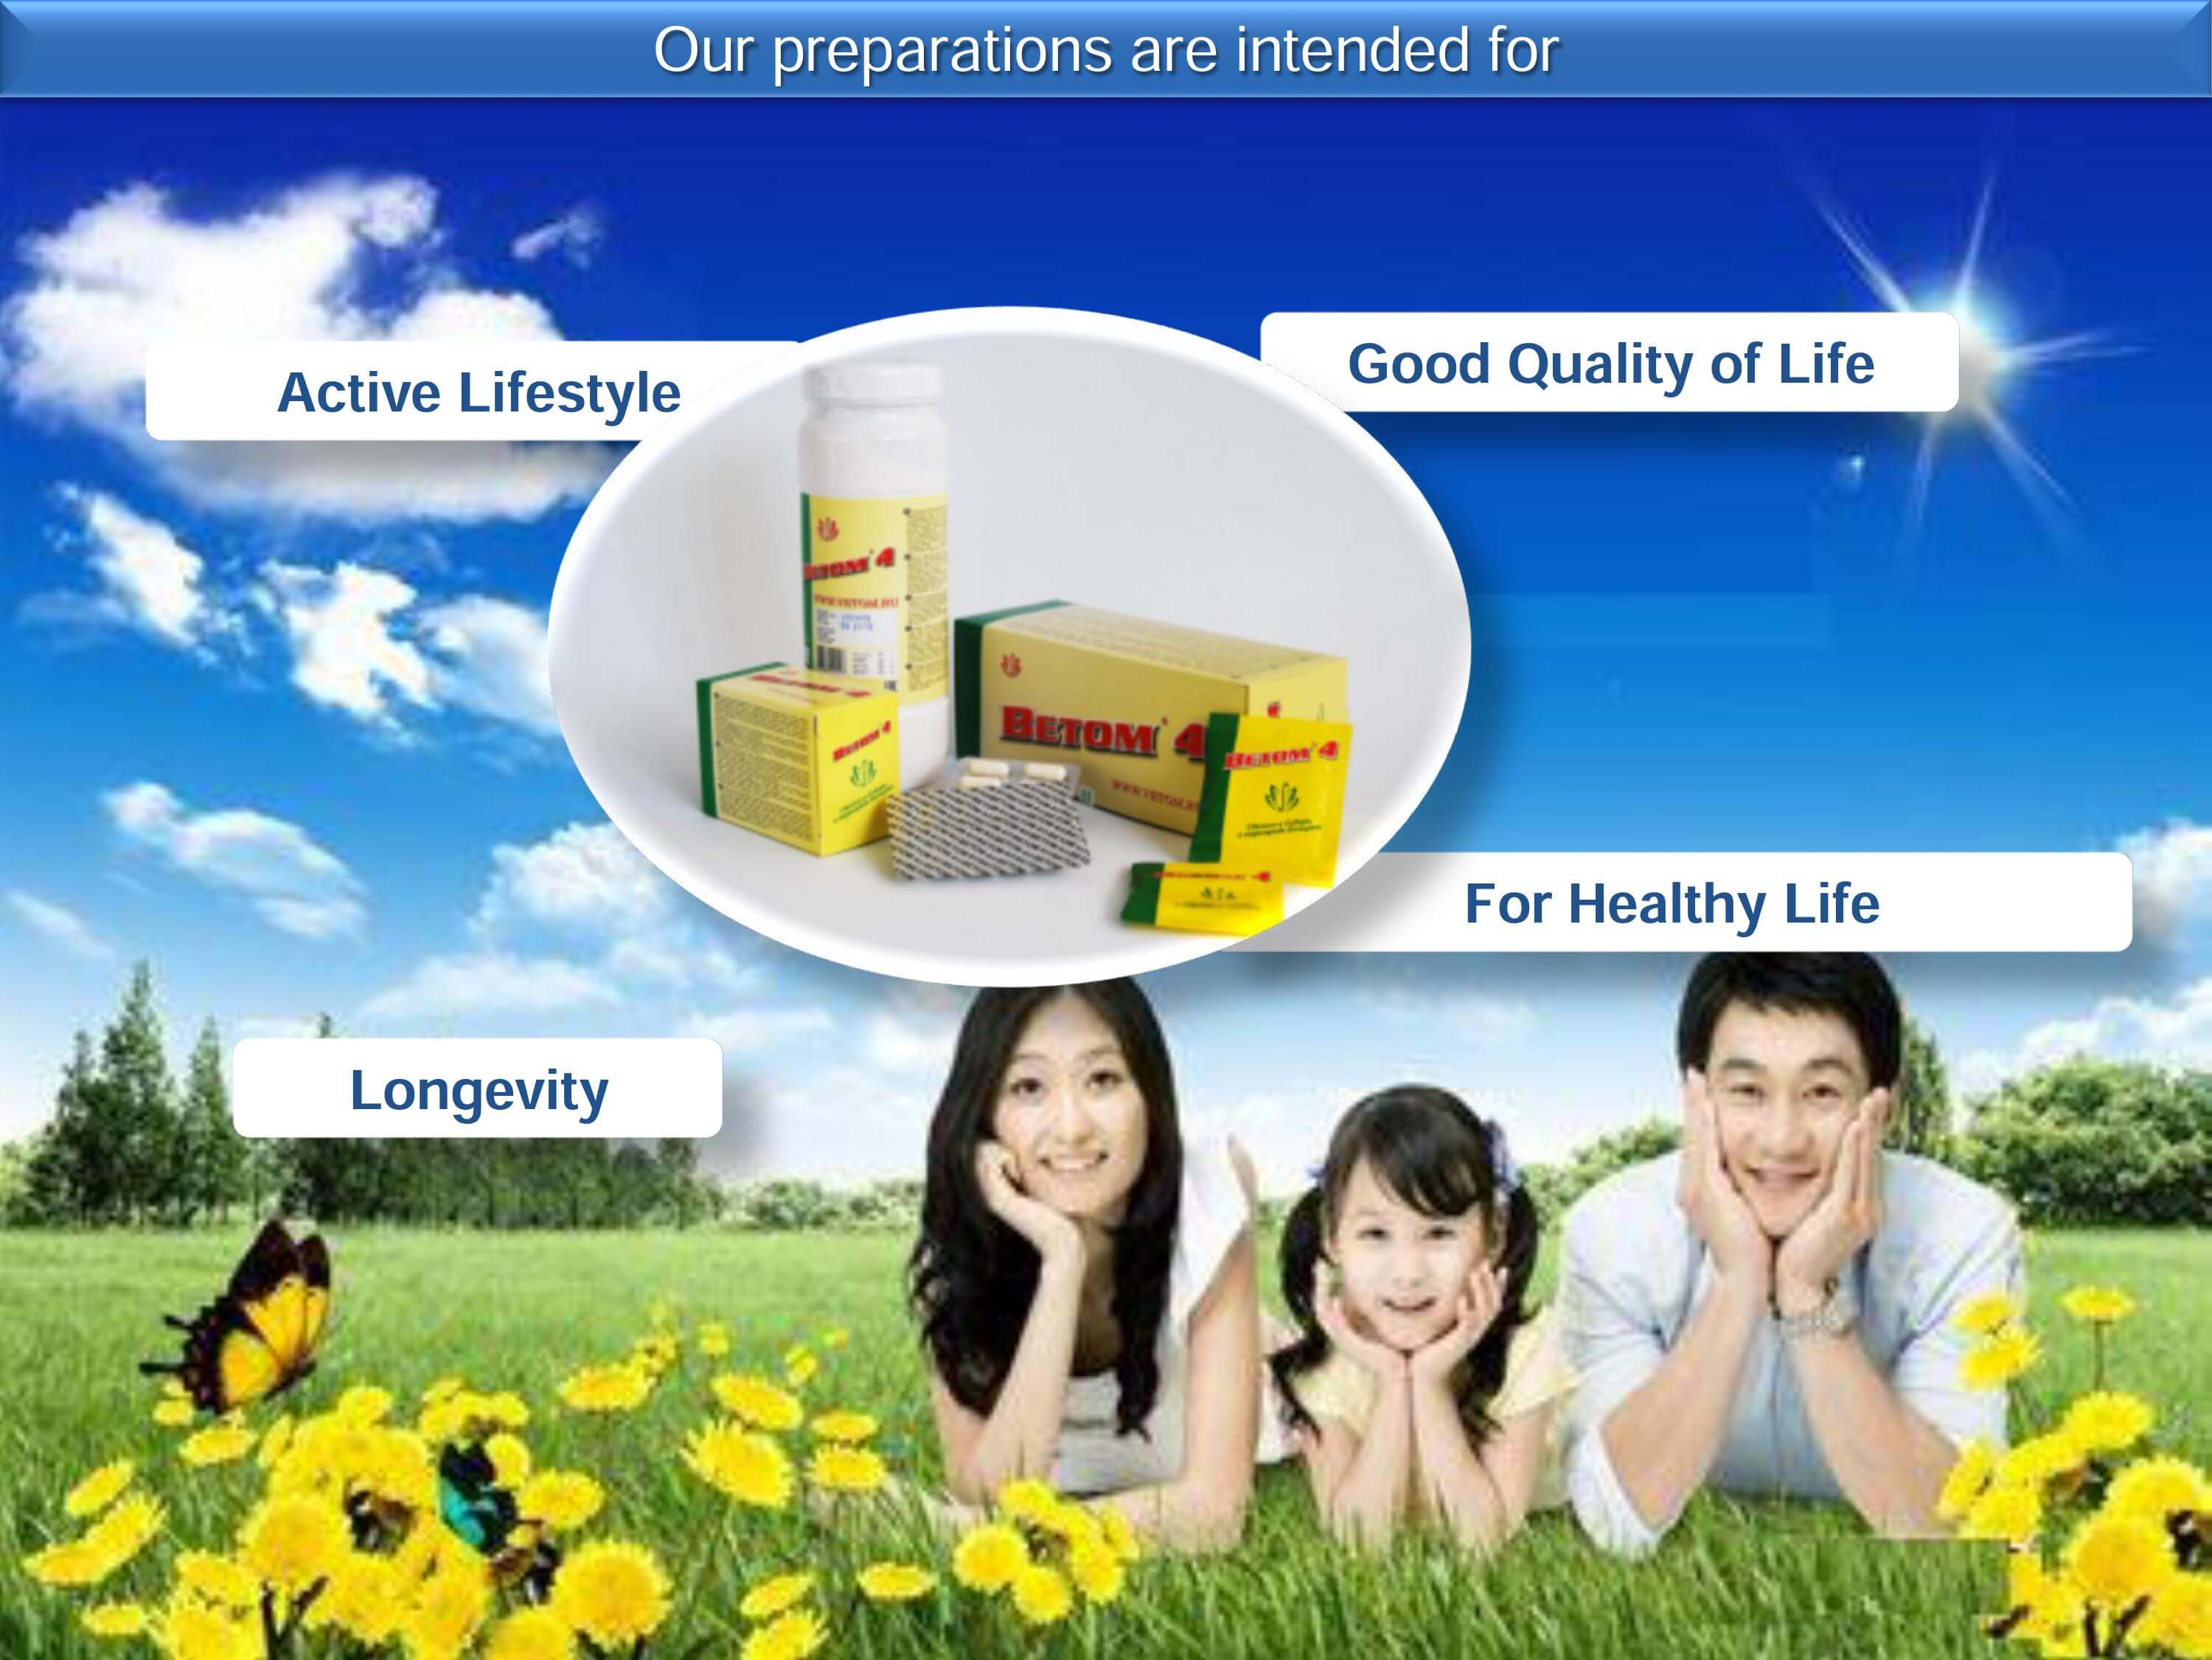 Our preparations are intended for an active lifestyle, longevity, good quality of life, for healthy life